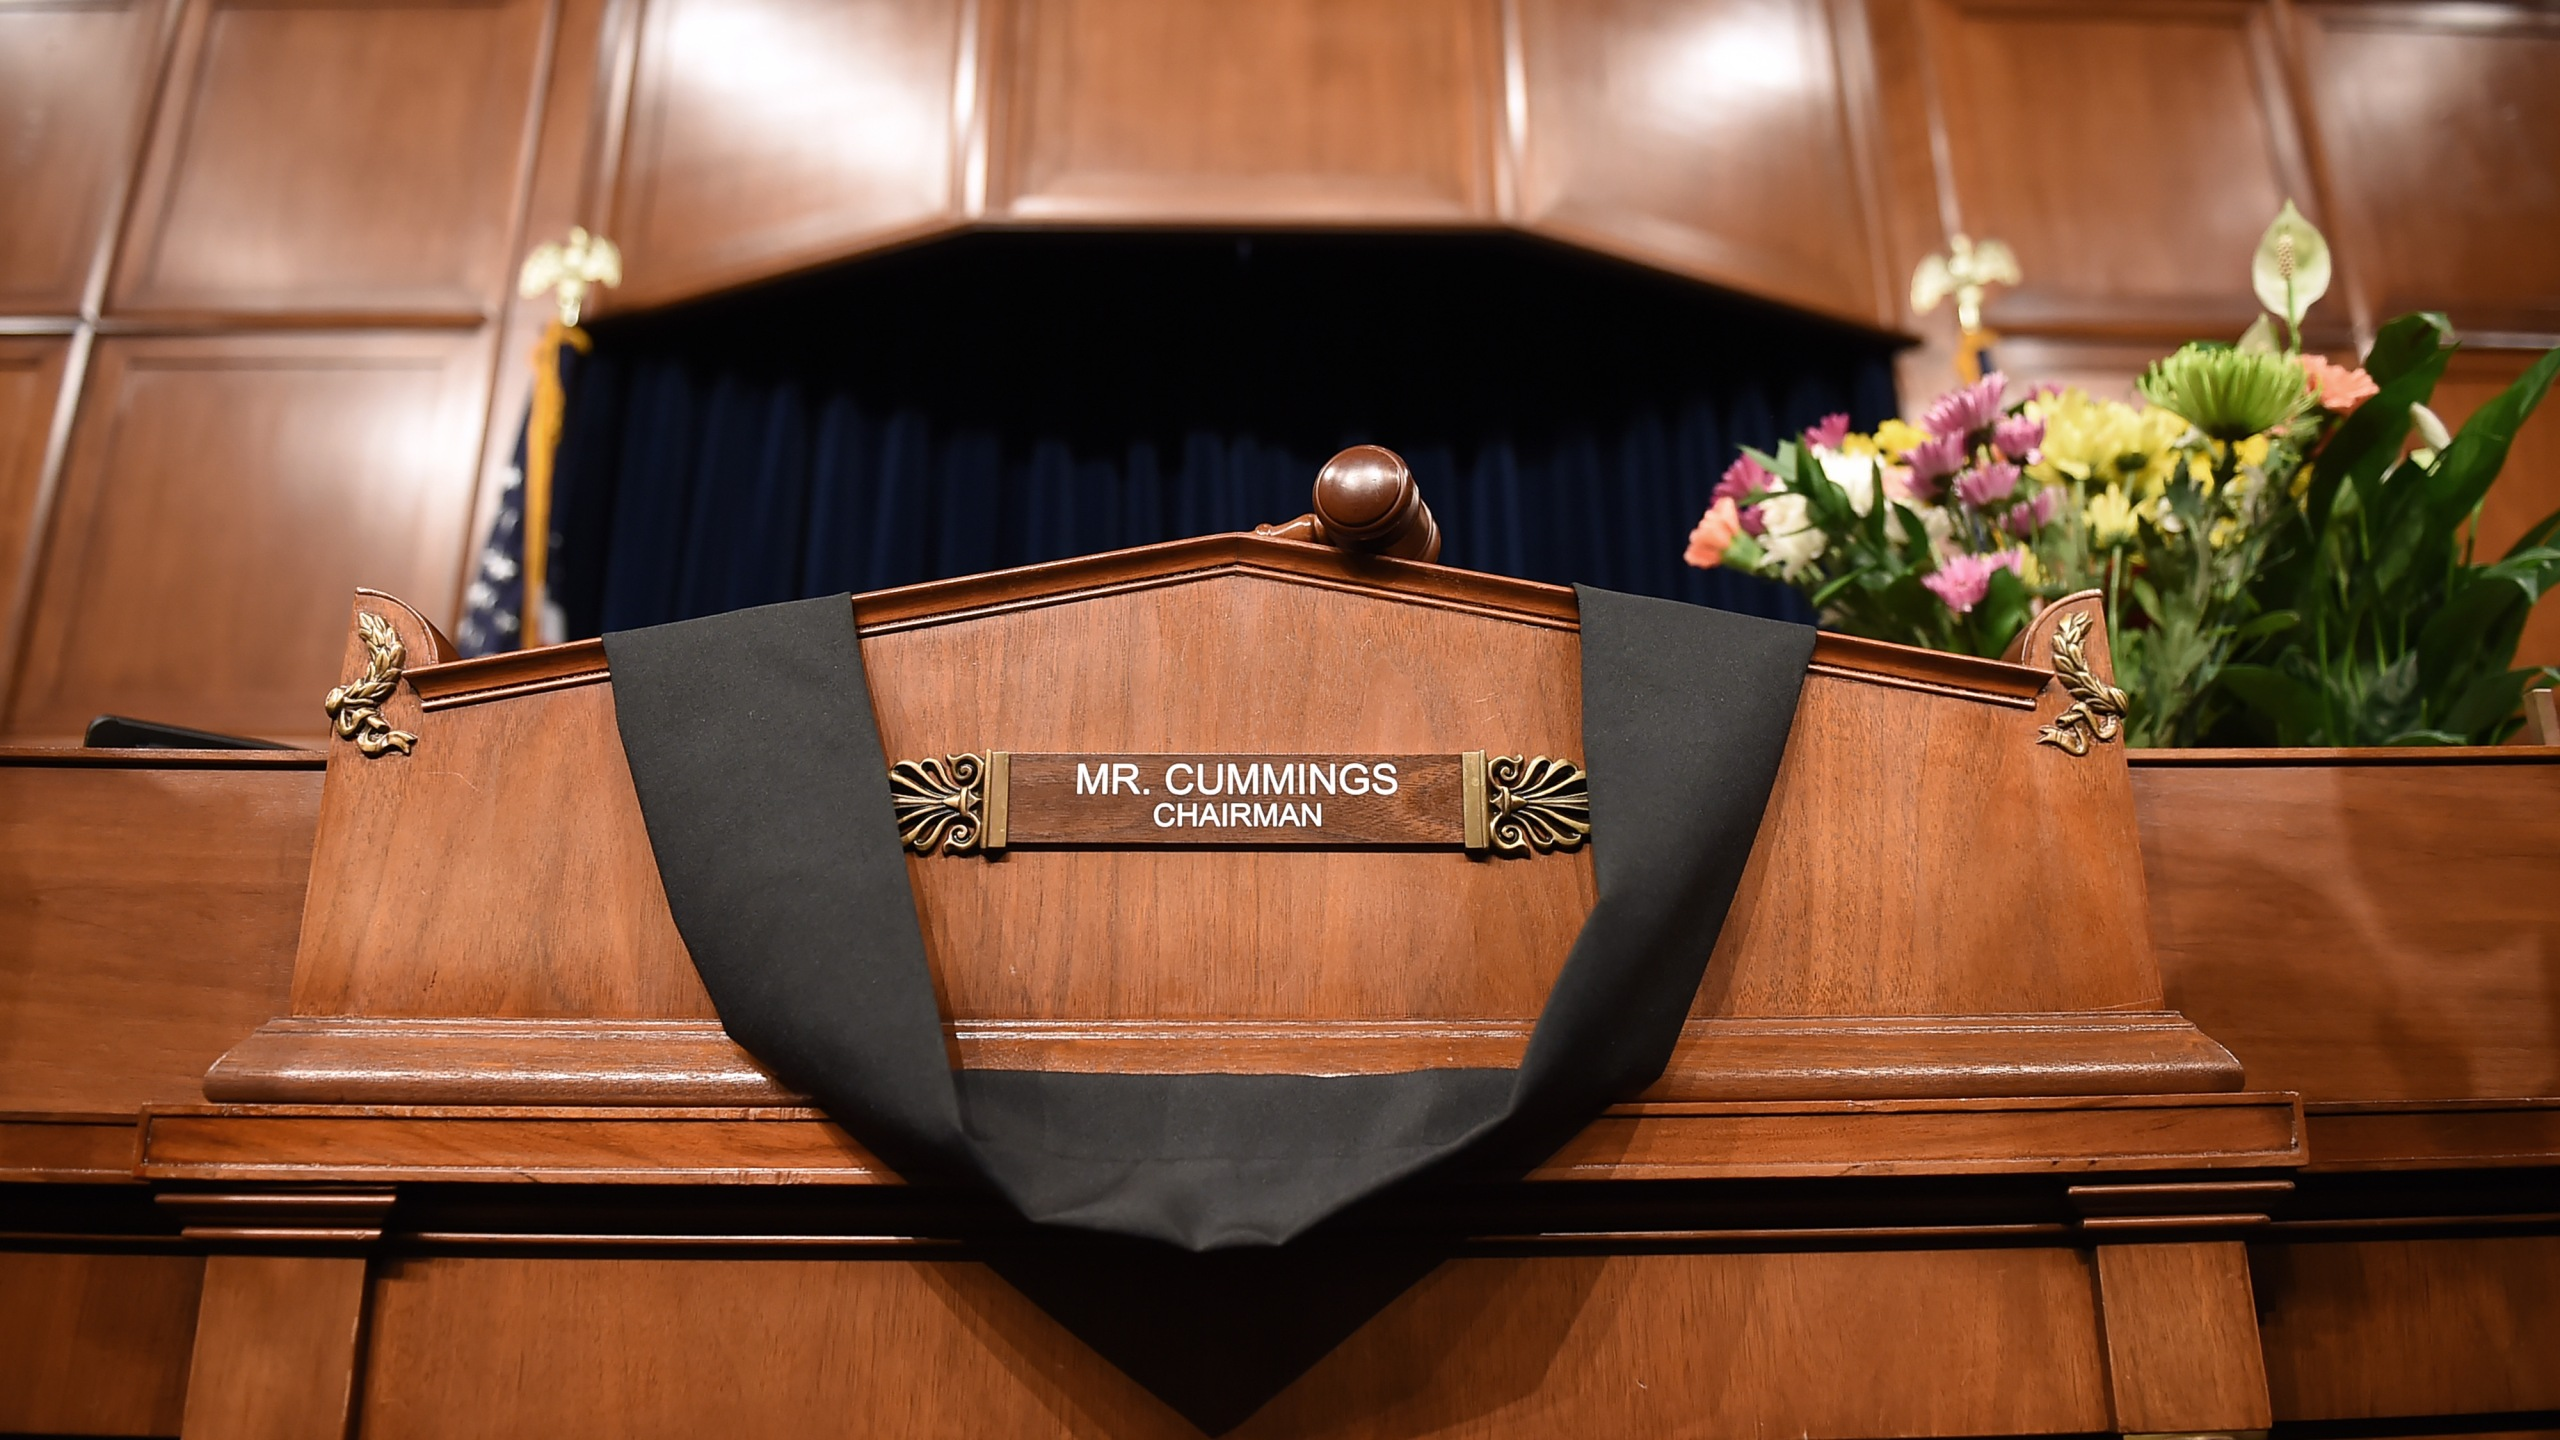 The Committee on Oversight and Reform room is adorned in black for Chairman Elijah Cummings, in Washington, D.C. on Oct. 17, 2019. (Credit: OLIVIER DOULIERY/AFP via Getty Images)